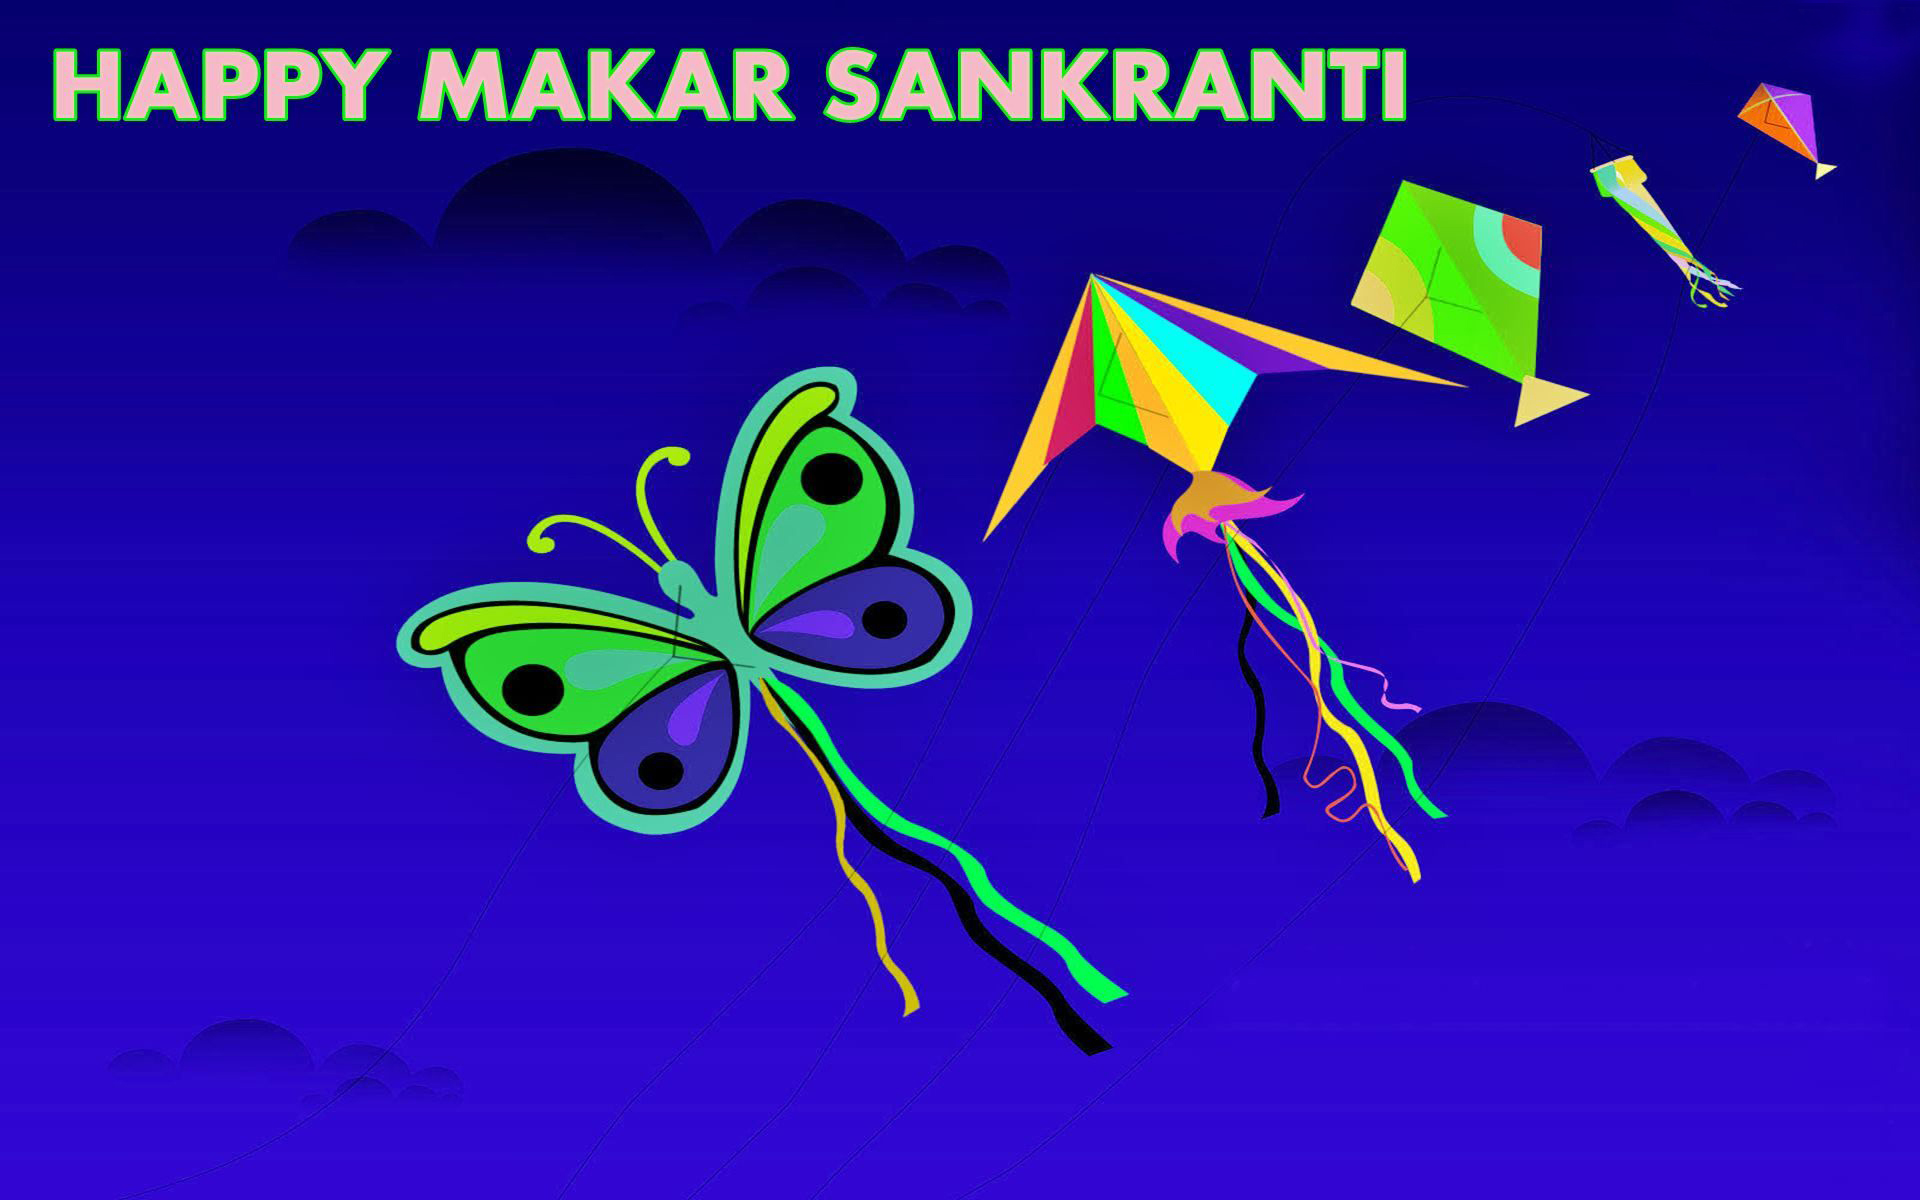 Makar sankranti pictures free download Introduction to the fashion Industry report - GCSE Business Studies